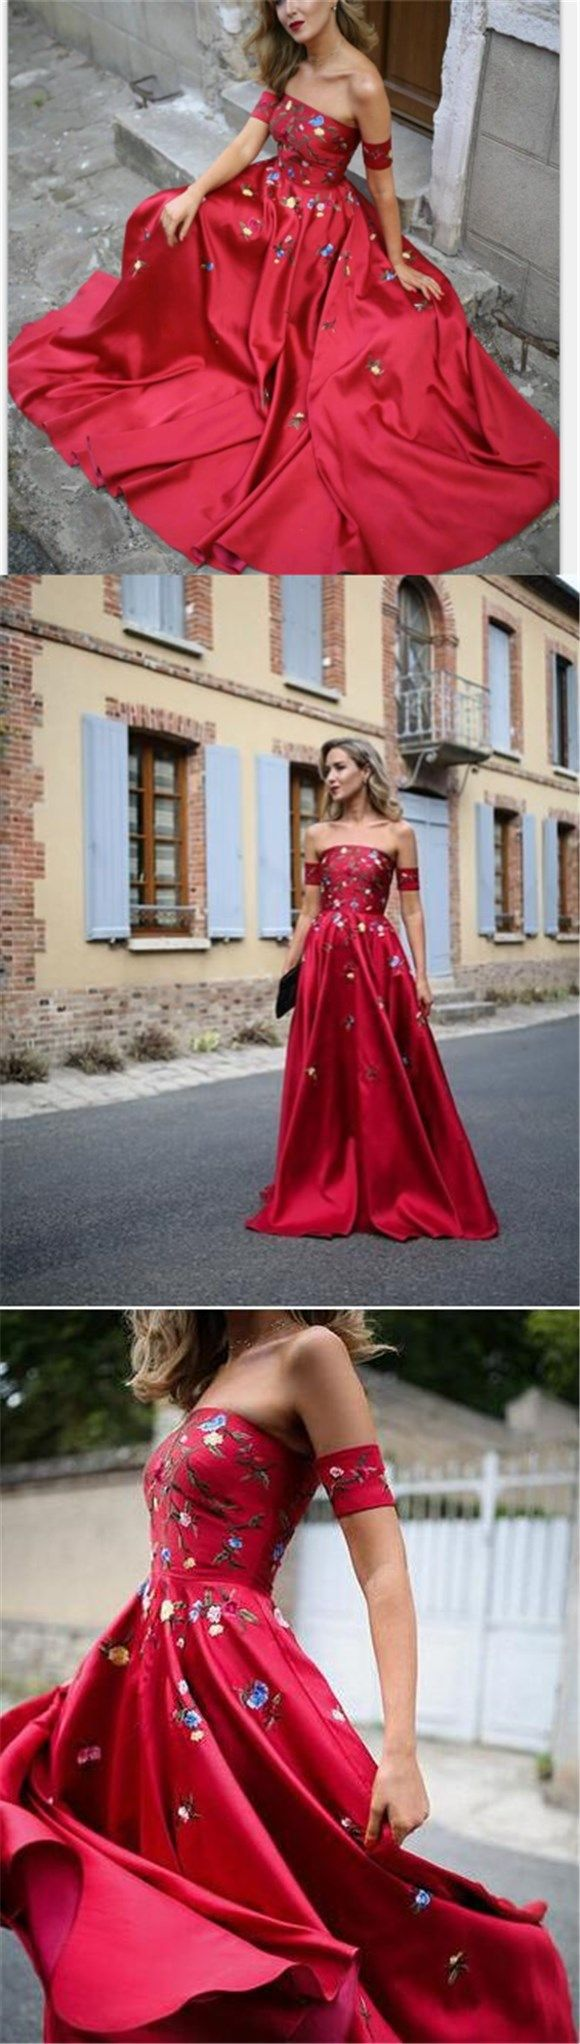 A-line Red Off Shoulder Beautiful Flower Appliques Prom Dresses, Fashion dress for woman, PD0475 #promdresses#sposabridal#fashion#prom #party